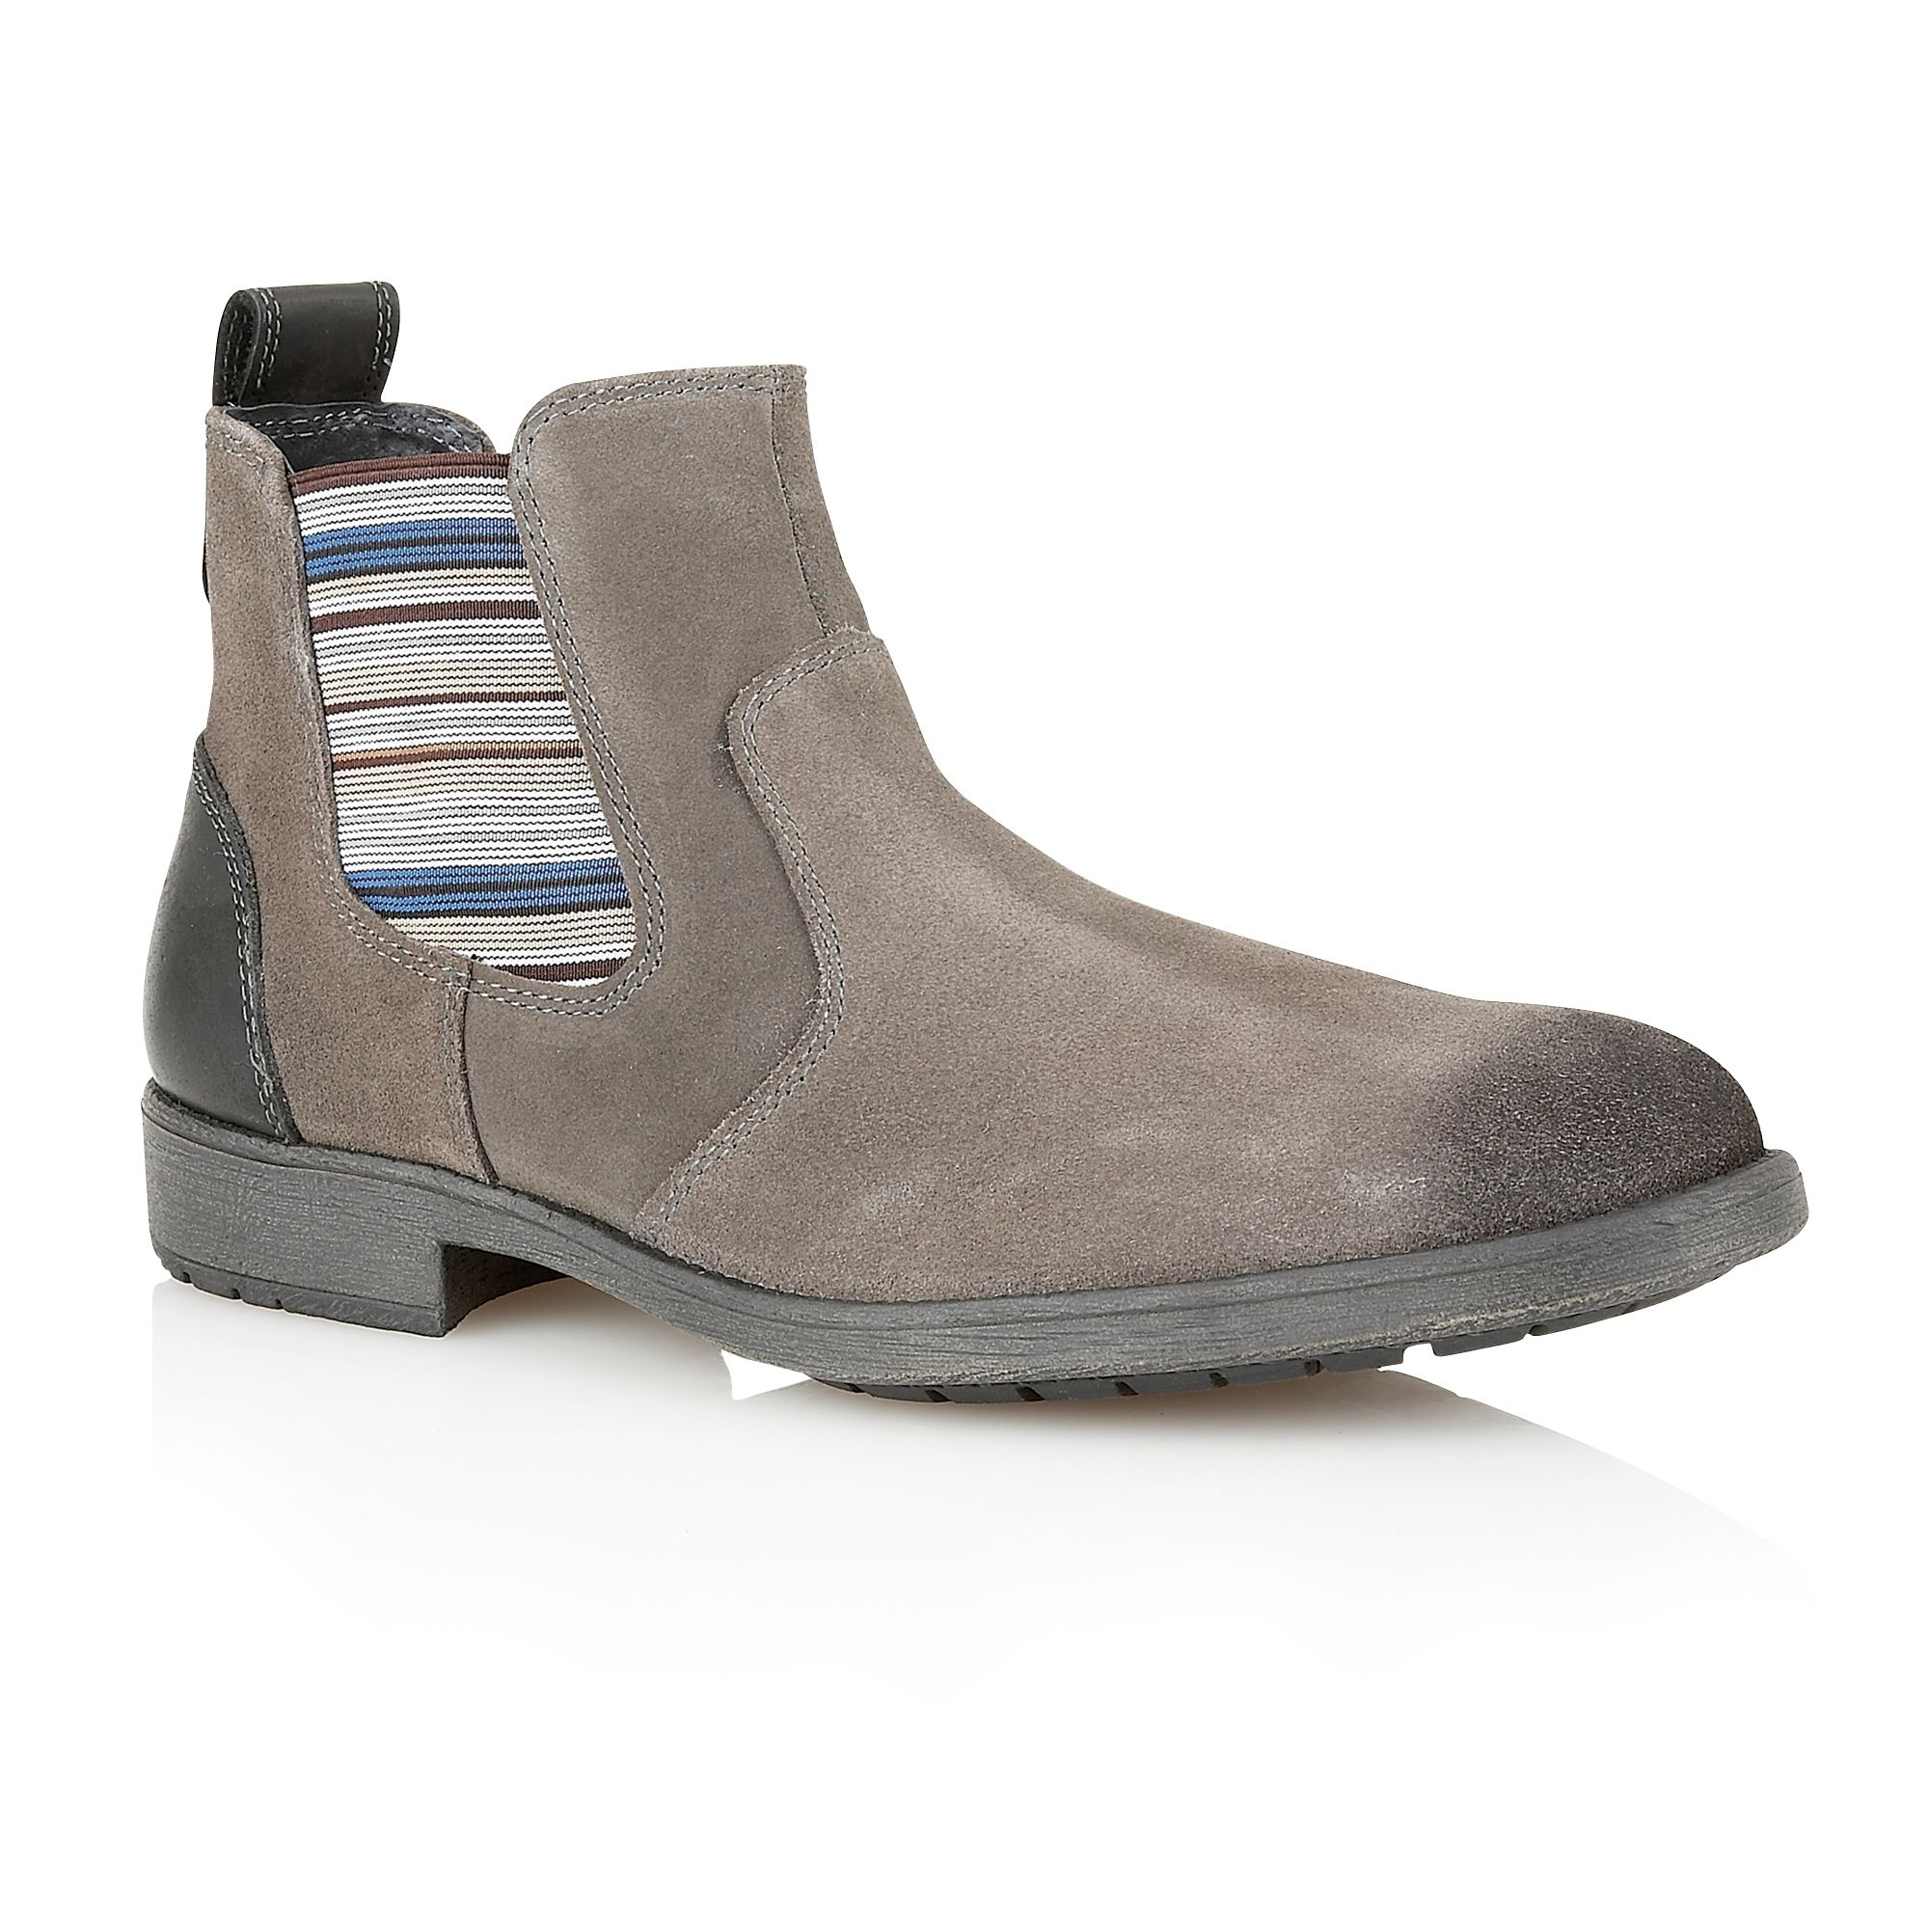 lotus slip on casual chelsea boots in gray for men lyst. Black Bedroom Furniture Sets. Home Design Ideas